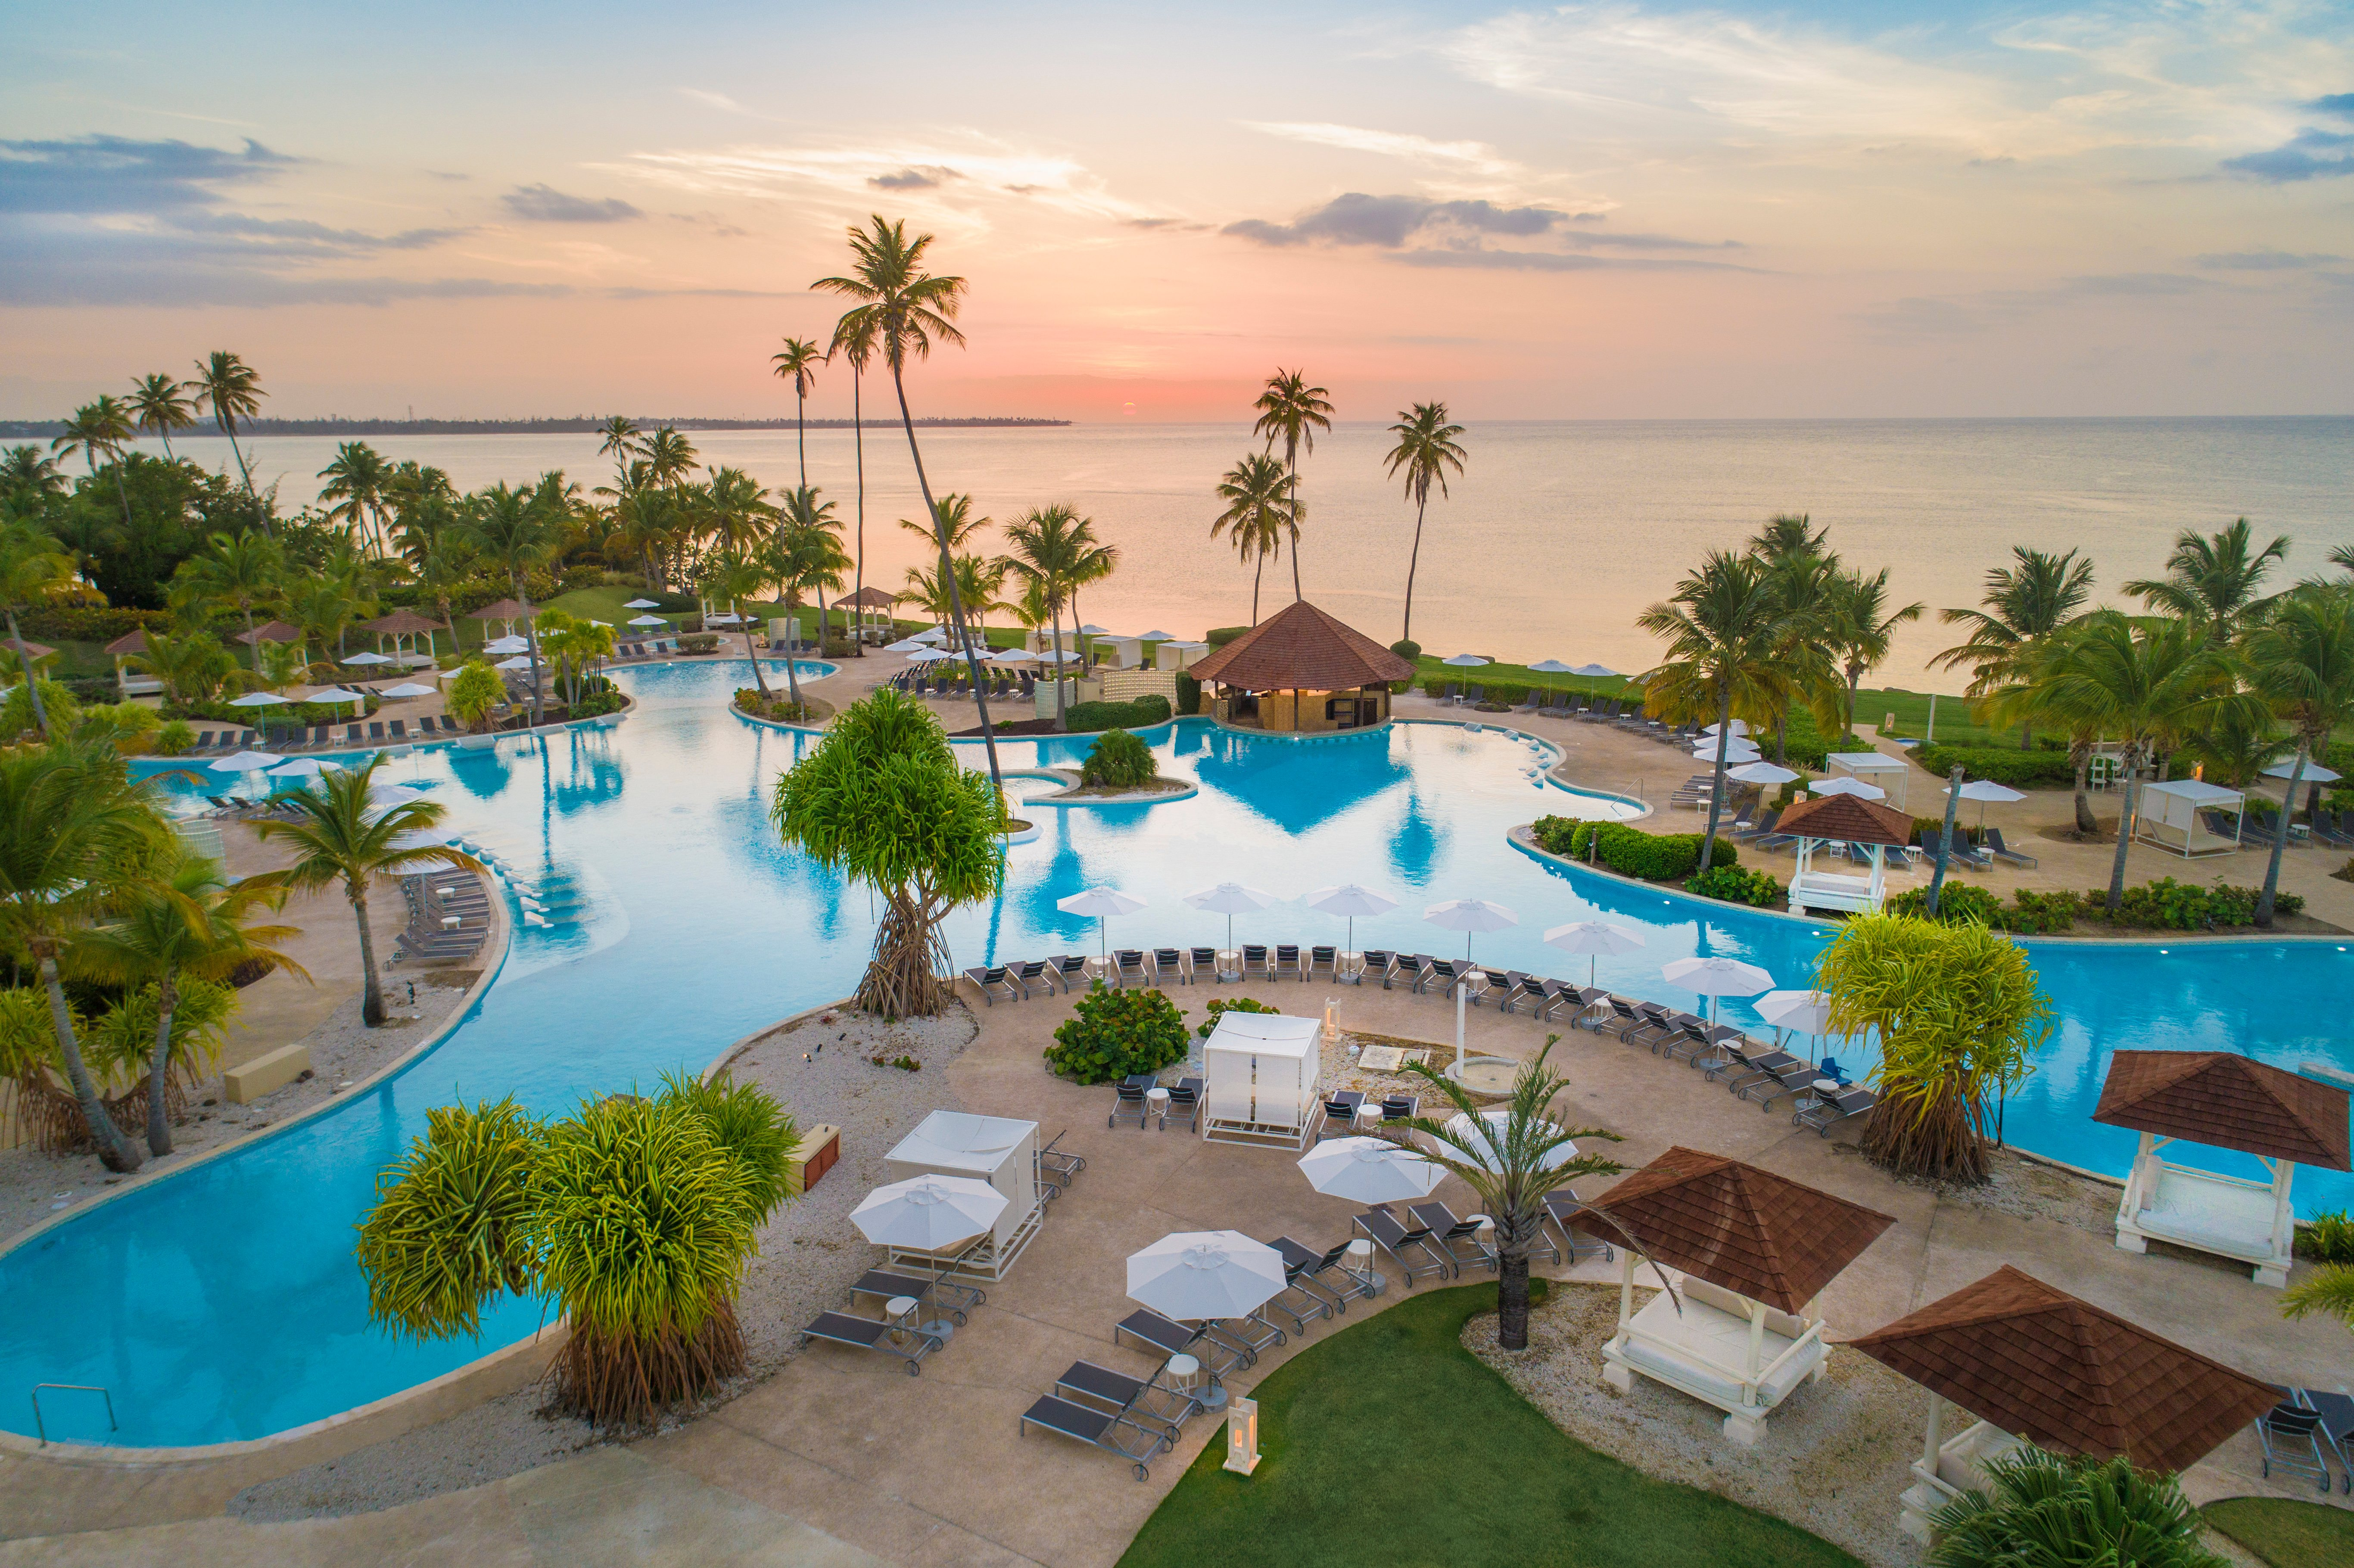 Among the property's four swimming pools is the largest lagoon-style pool in Puerto Rico as well as a swim-up bar with in-pool lounge chairs.